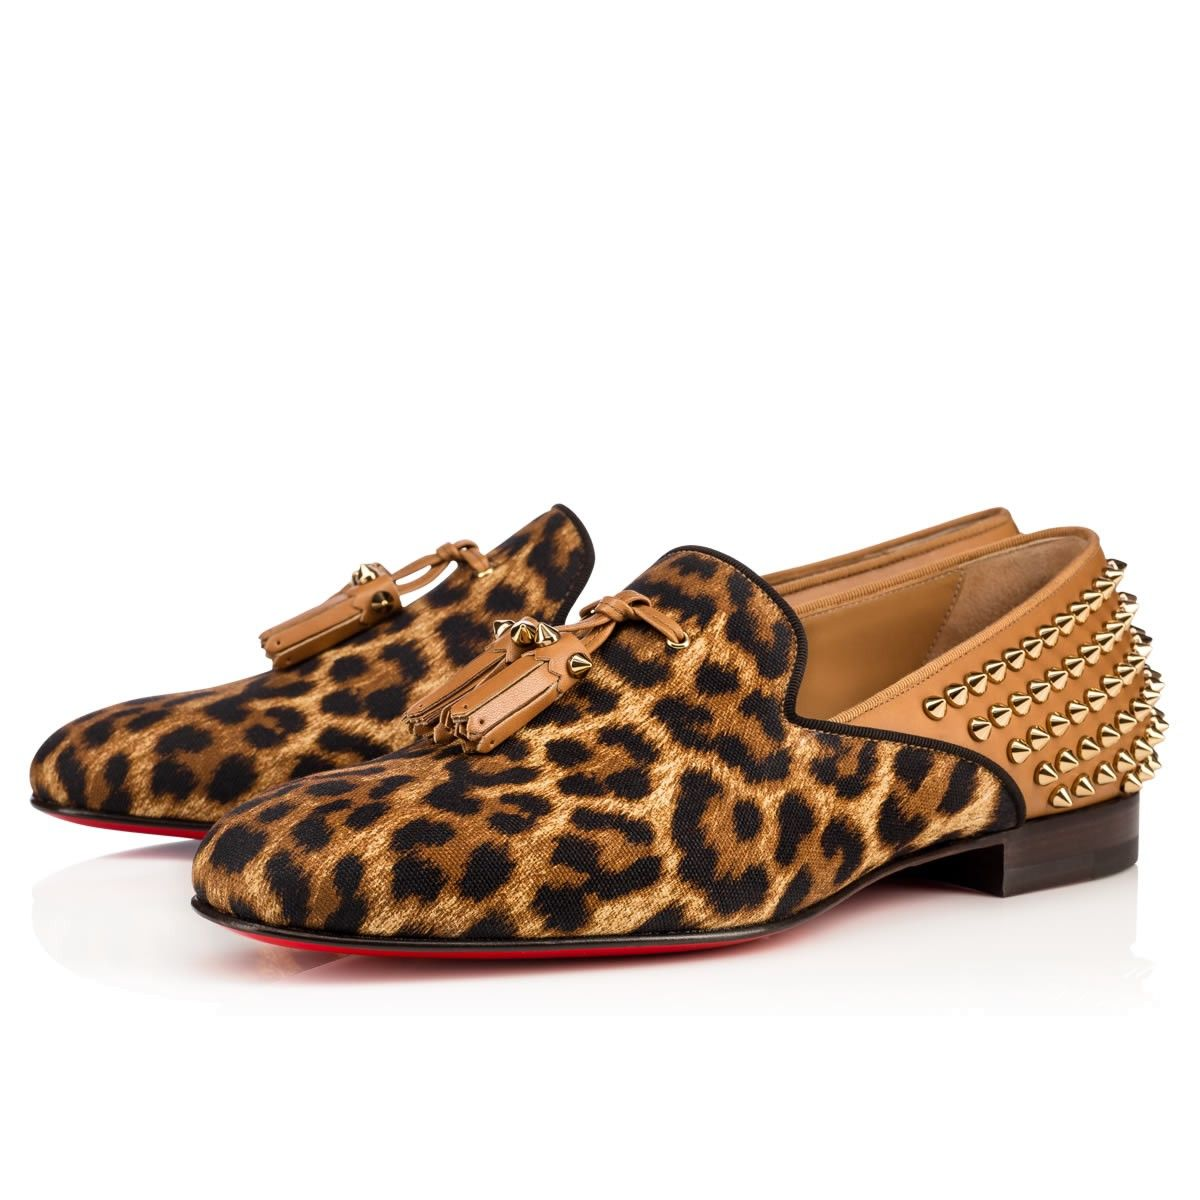 Men Shoes - Tassilo Flat - Christian Louboutin if you love me, buy these.